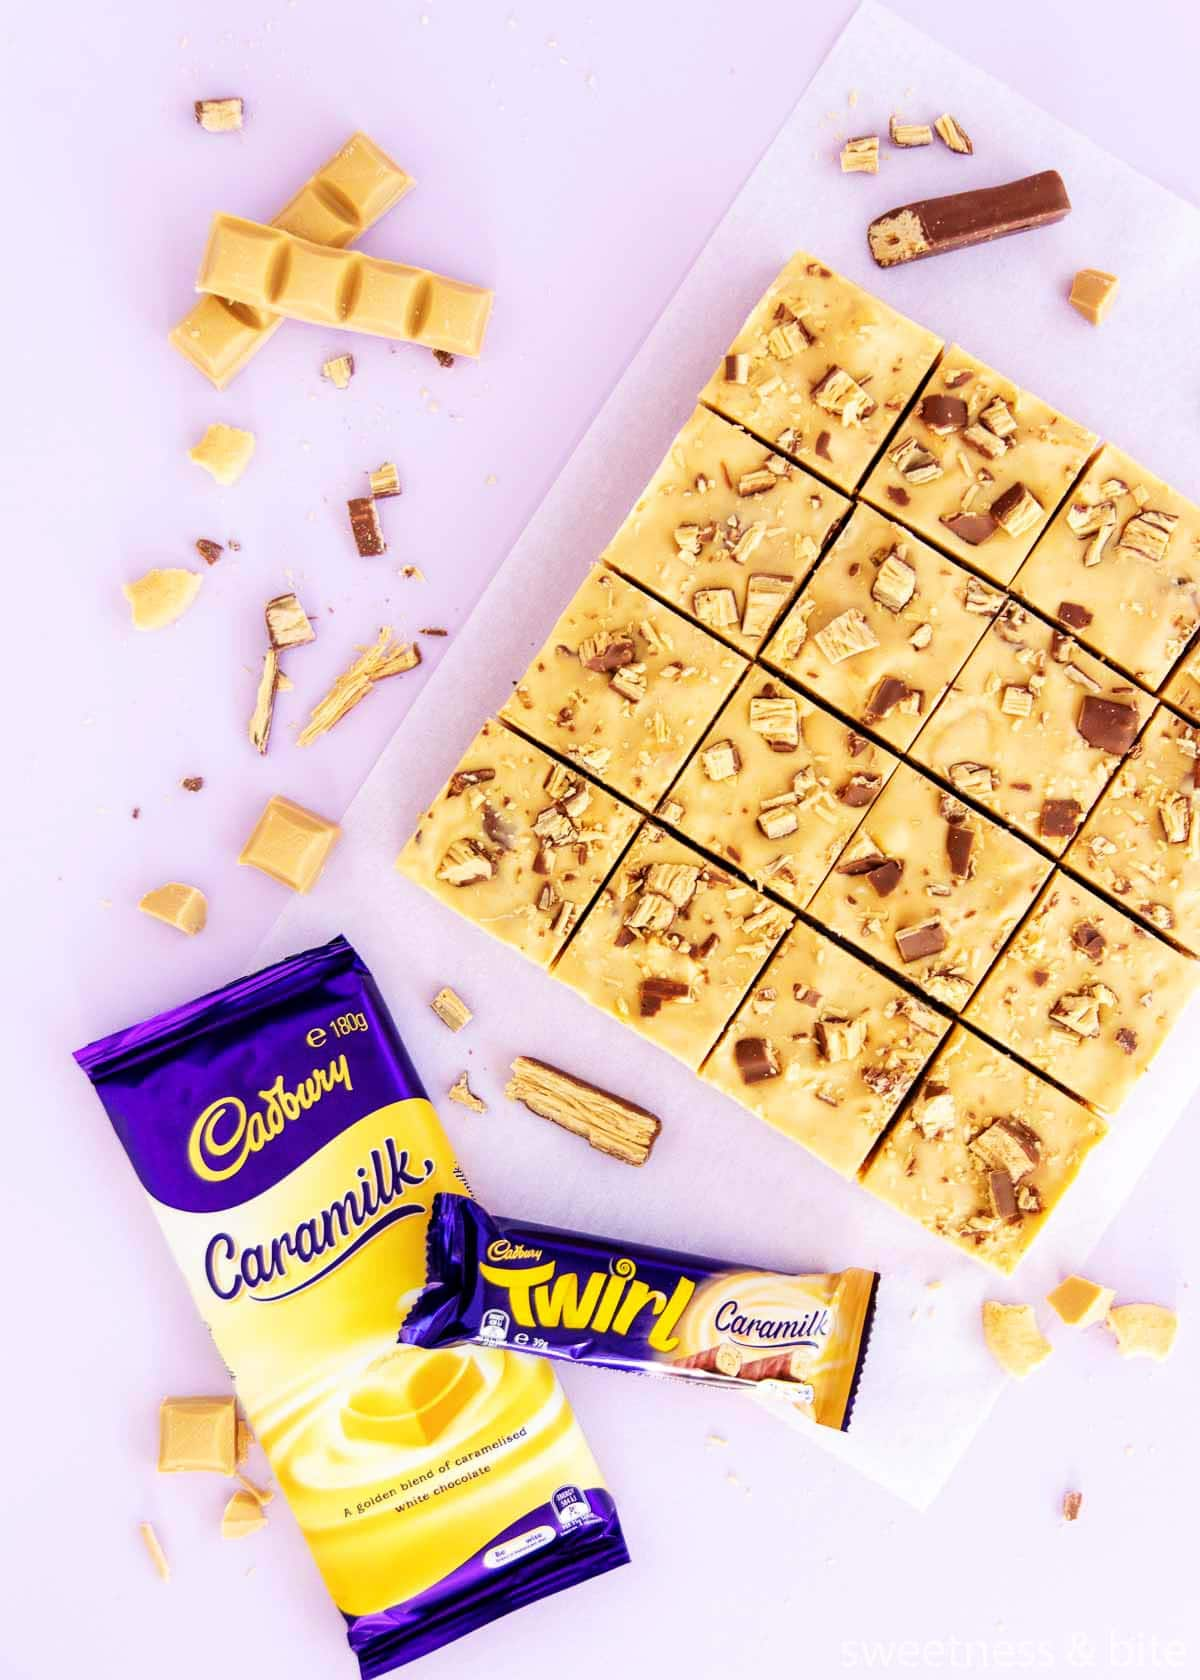 16 squares of Caramilk Fudge Slice, with a wrapped block of Caramilk chocolate and a Caramilk Twirl.